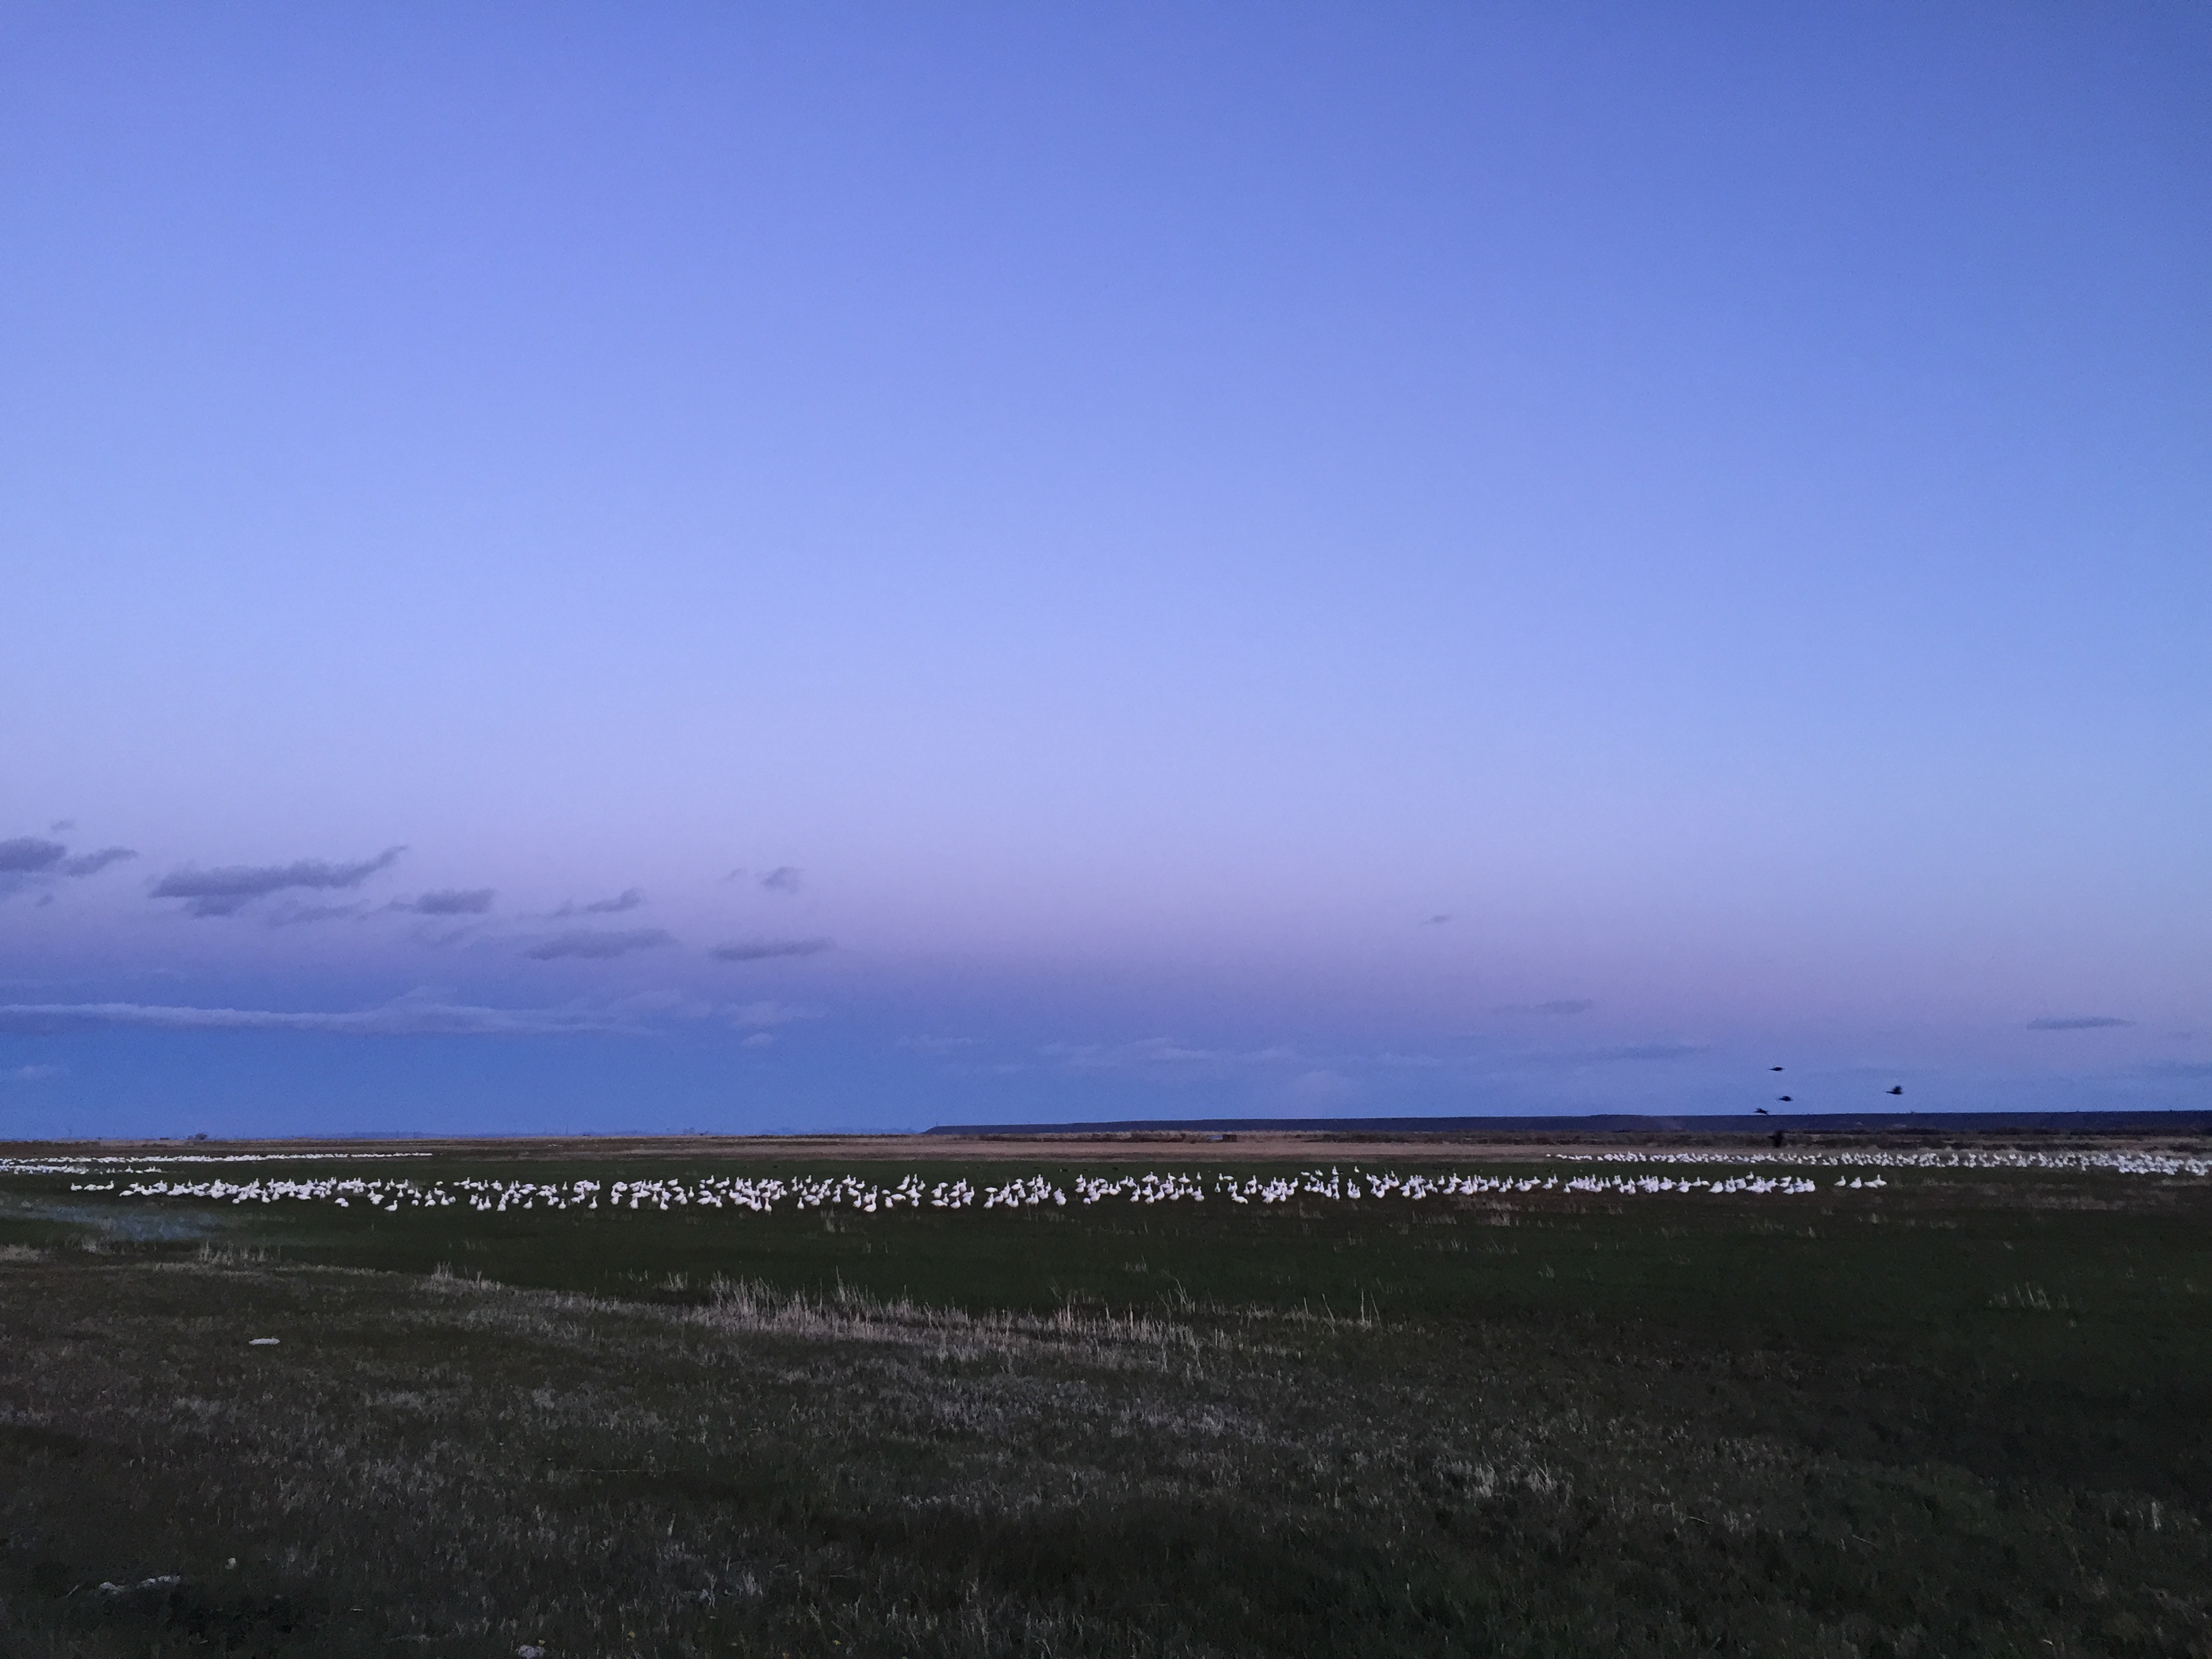 Kira-Harney-snow-geese-deleted-e1b6767ef957a058cb32b4ee11f73ff0